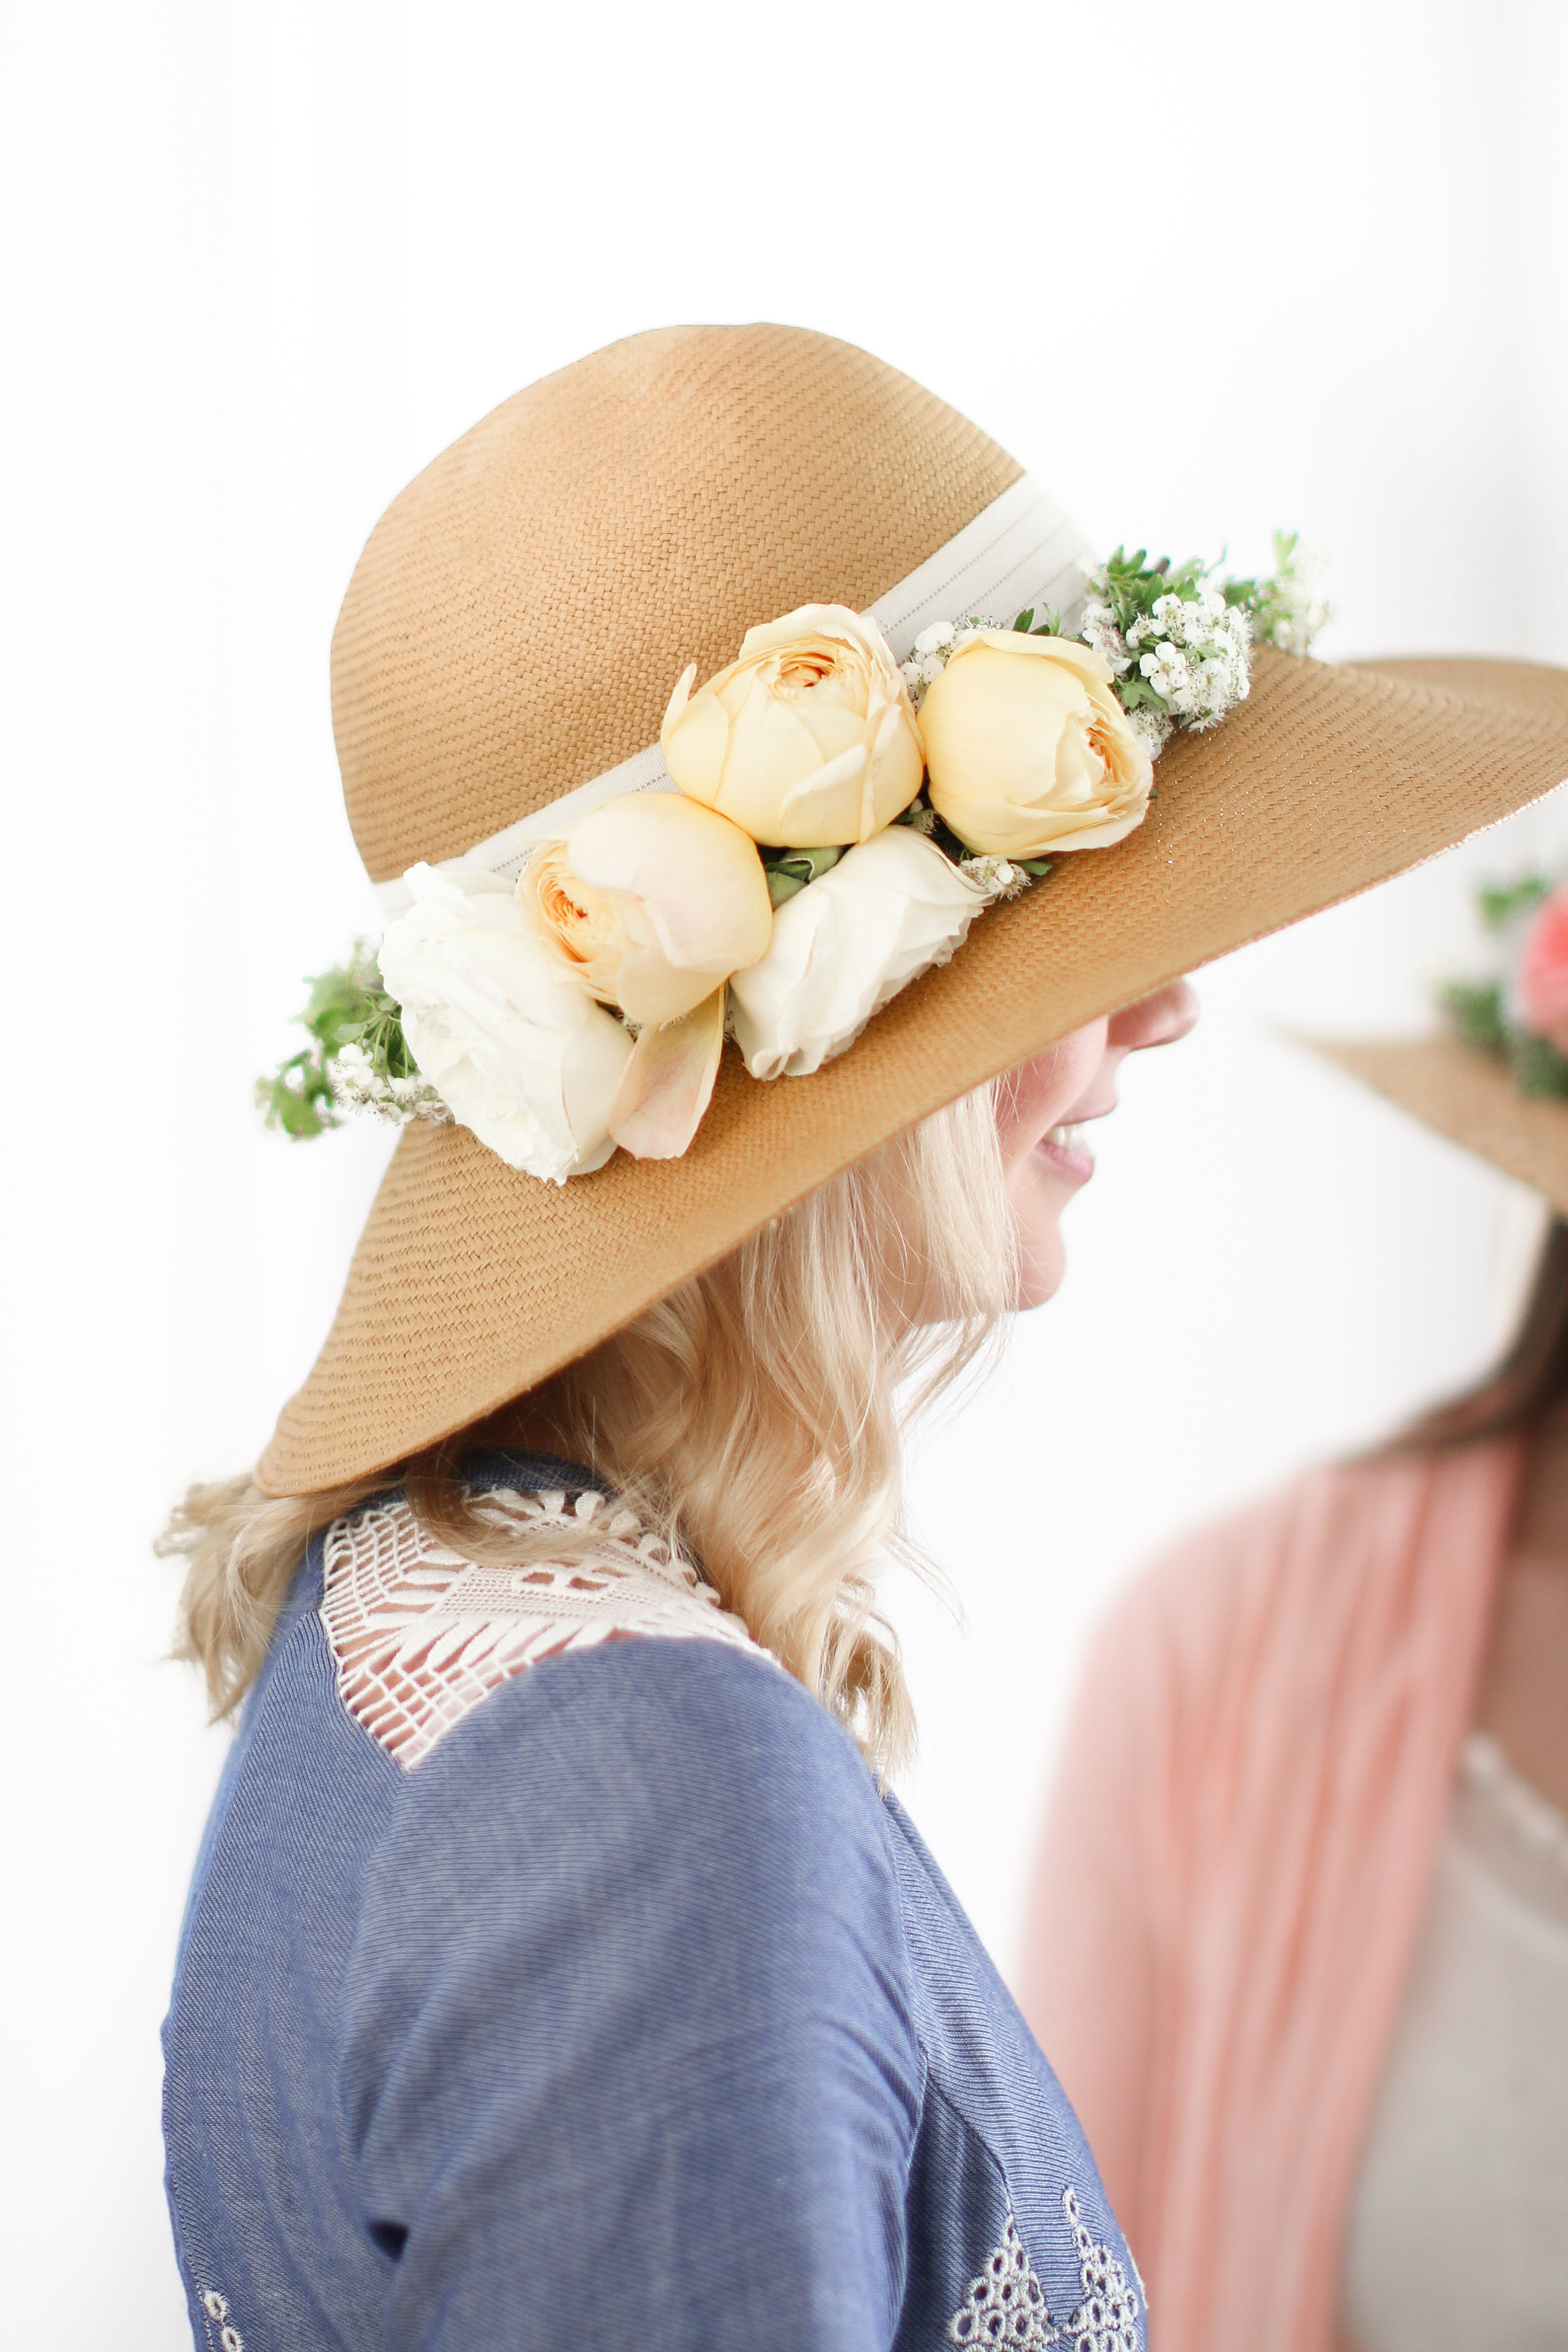 DIY Foral Hat Mother's Day DIY